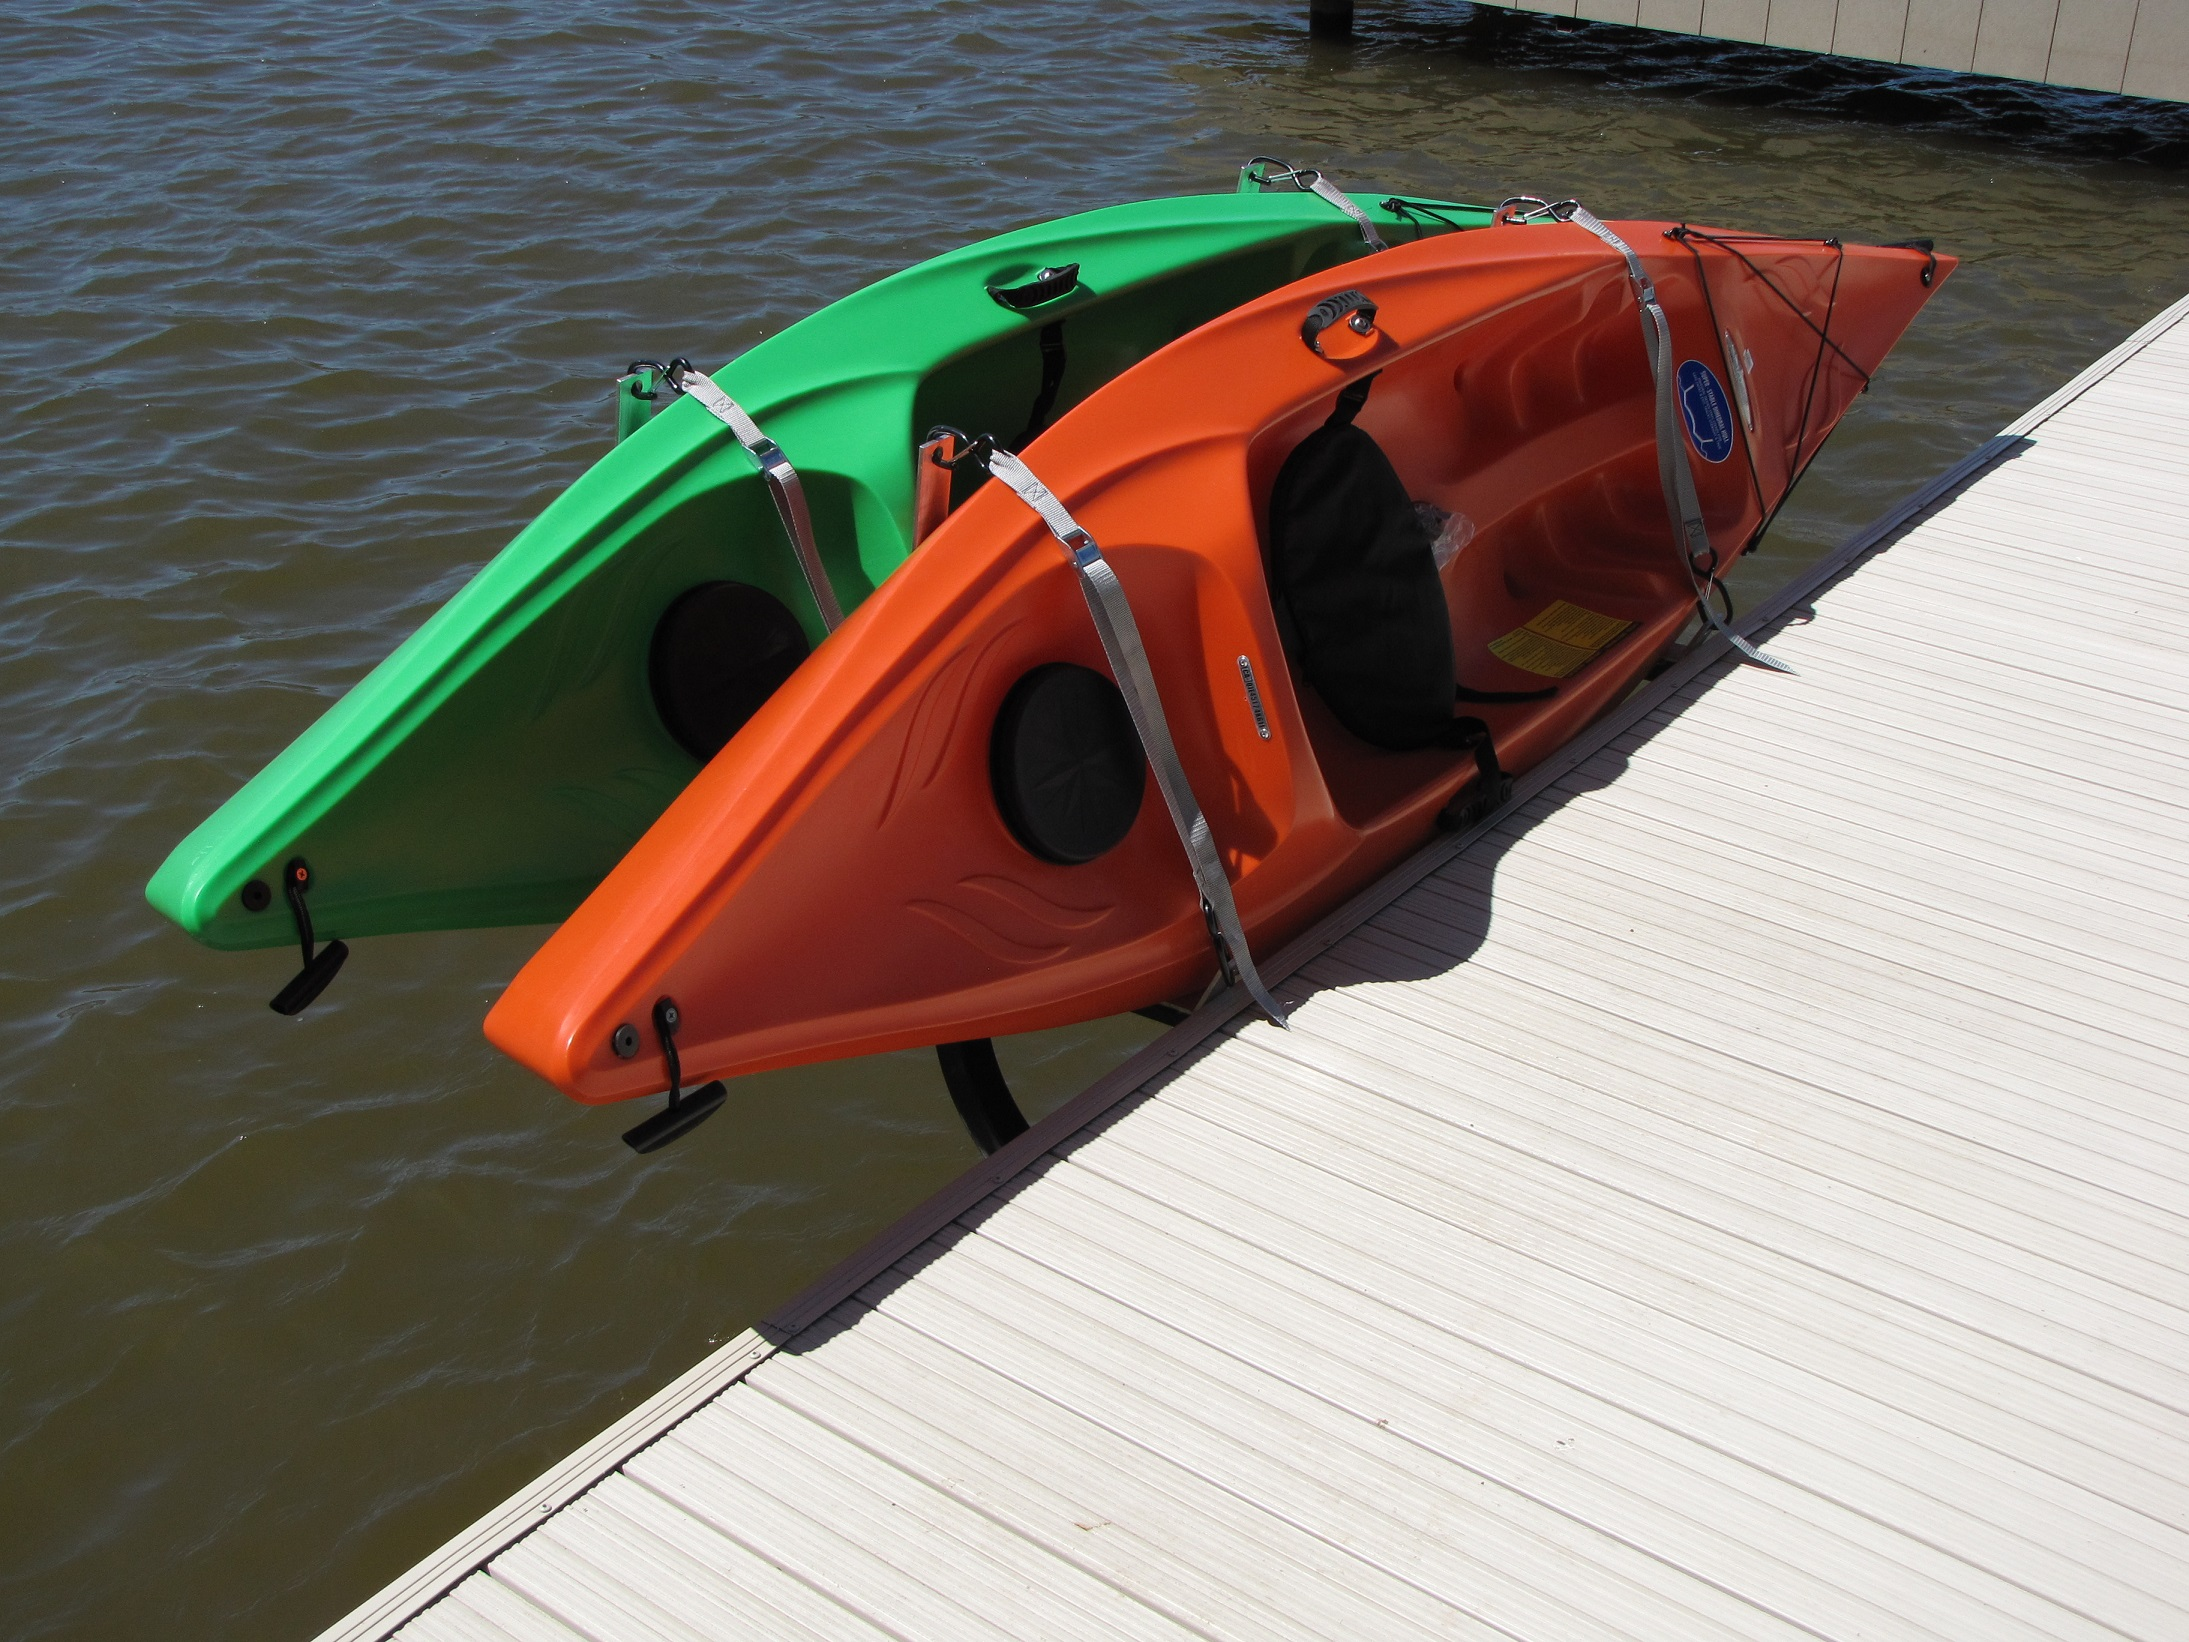 Storage for two kayaks